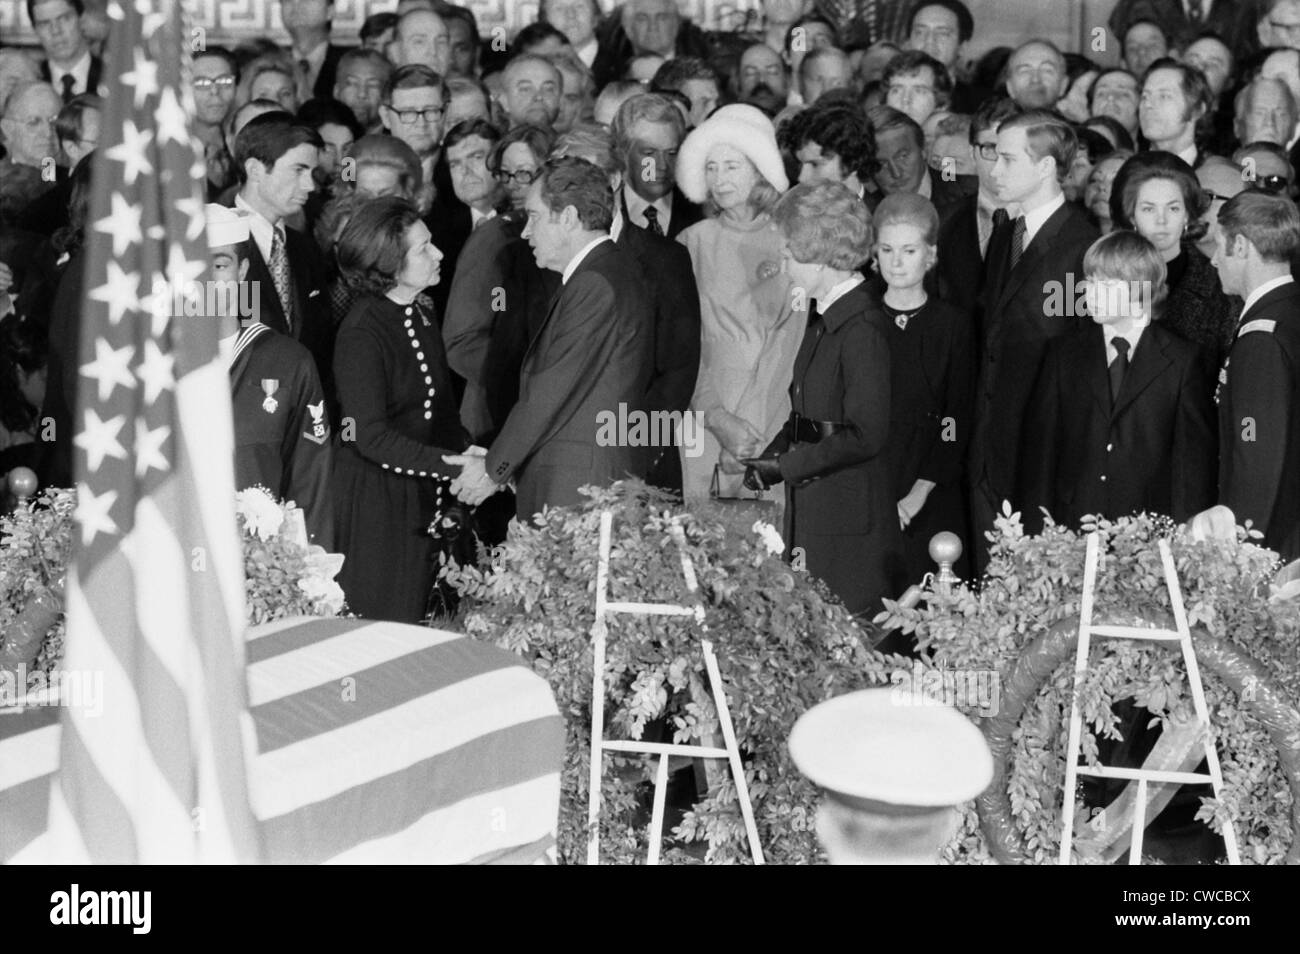 Lyndon Johnson funeral. President Nixon offering condolences to Lady Bird Johnson at LBJ funeral ceremonies inside Stock Photo